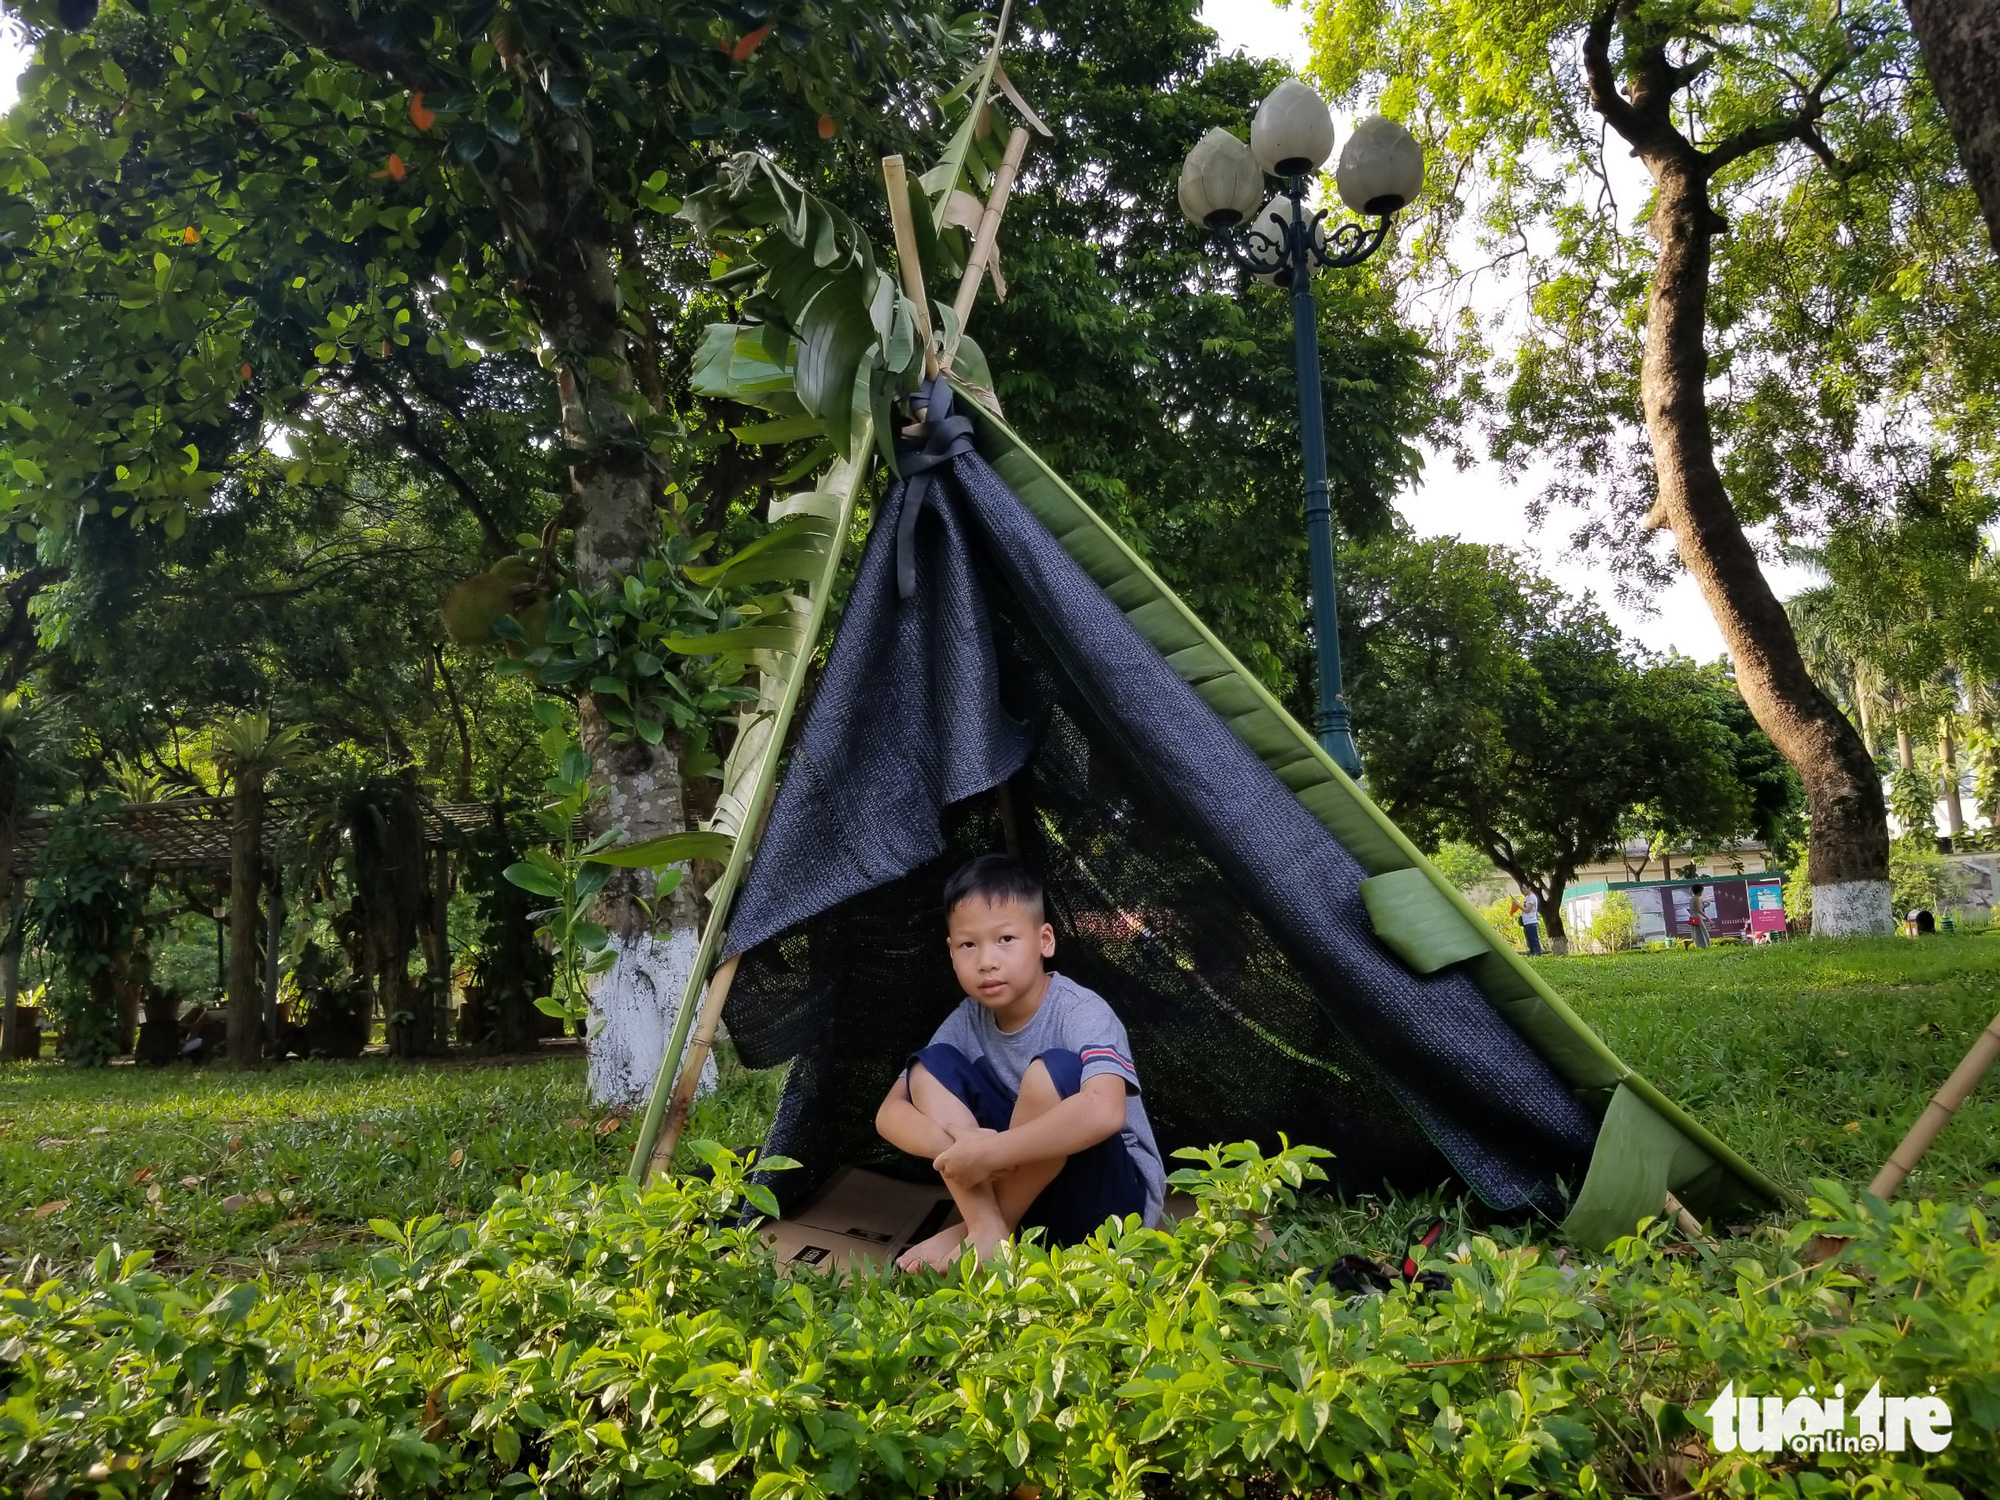 A boy sits in a tent made from canvases banana leaves at the 'Kingdom of Recycled Materials' event in Hanoi, Vietnam, May 31, 2020. Photo: Ha Thanh / Tuoi Tre